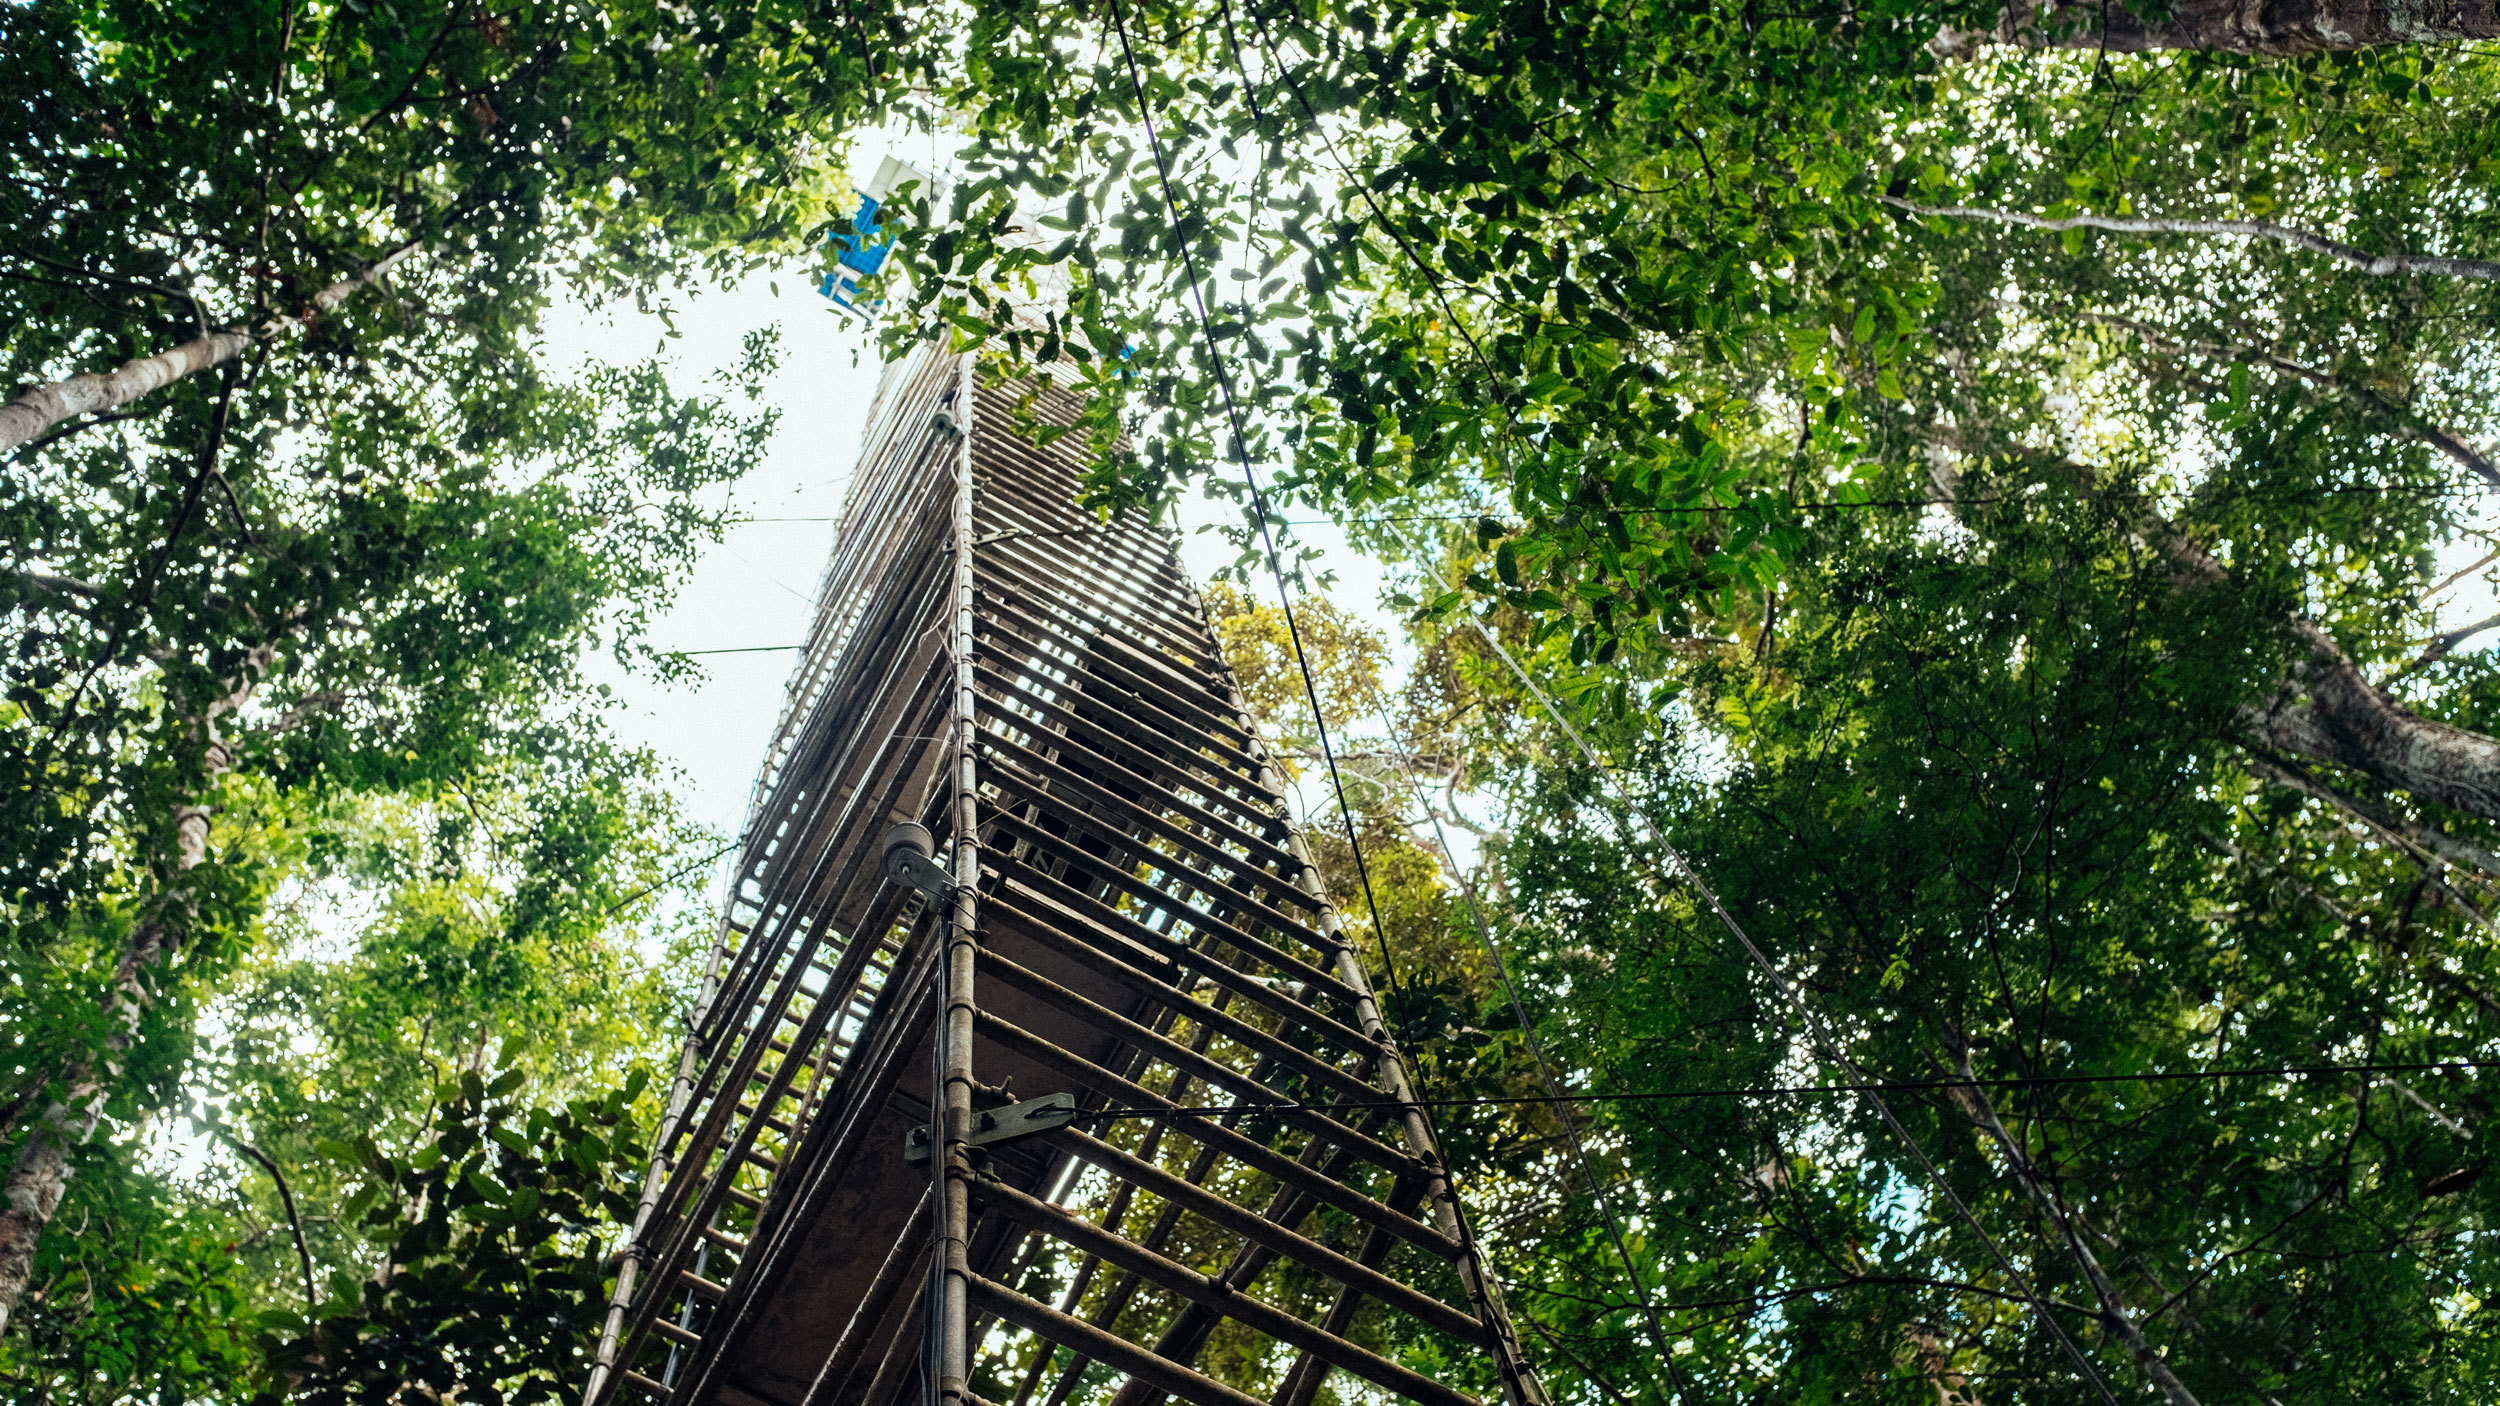 A tower of steel rises out of the dense jungle into the sky